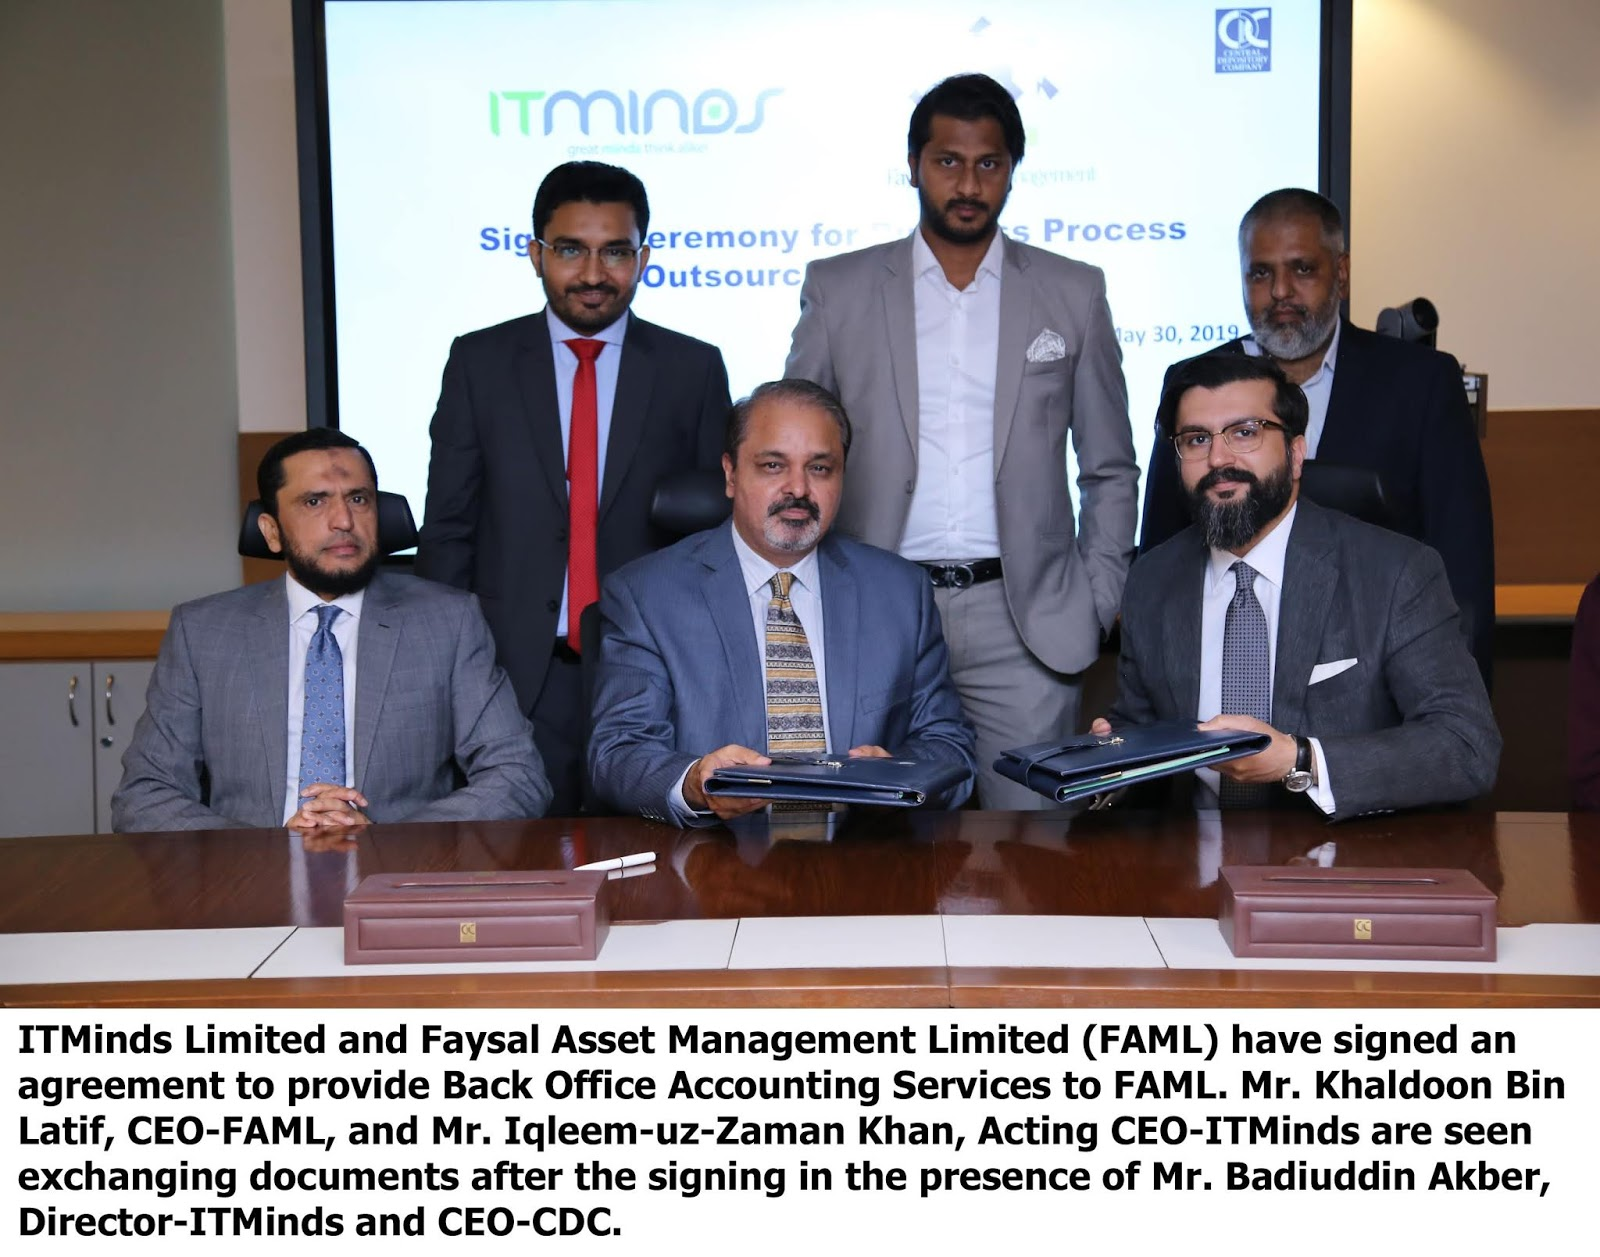 ITMinds Limited and Faysal Asset Management Limited sign agreement for outsourcing Back Office Accounting Services